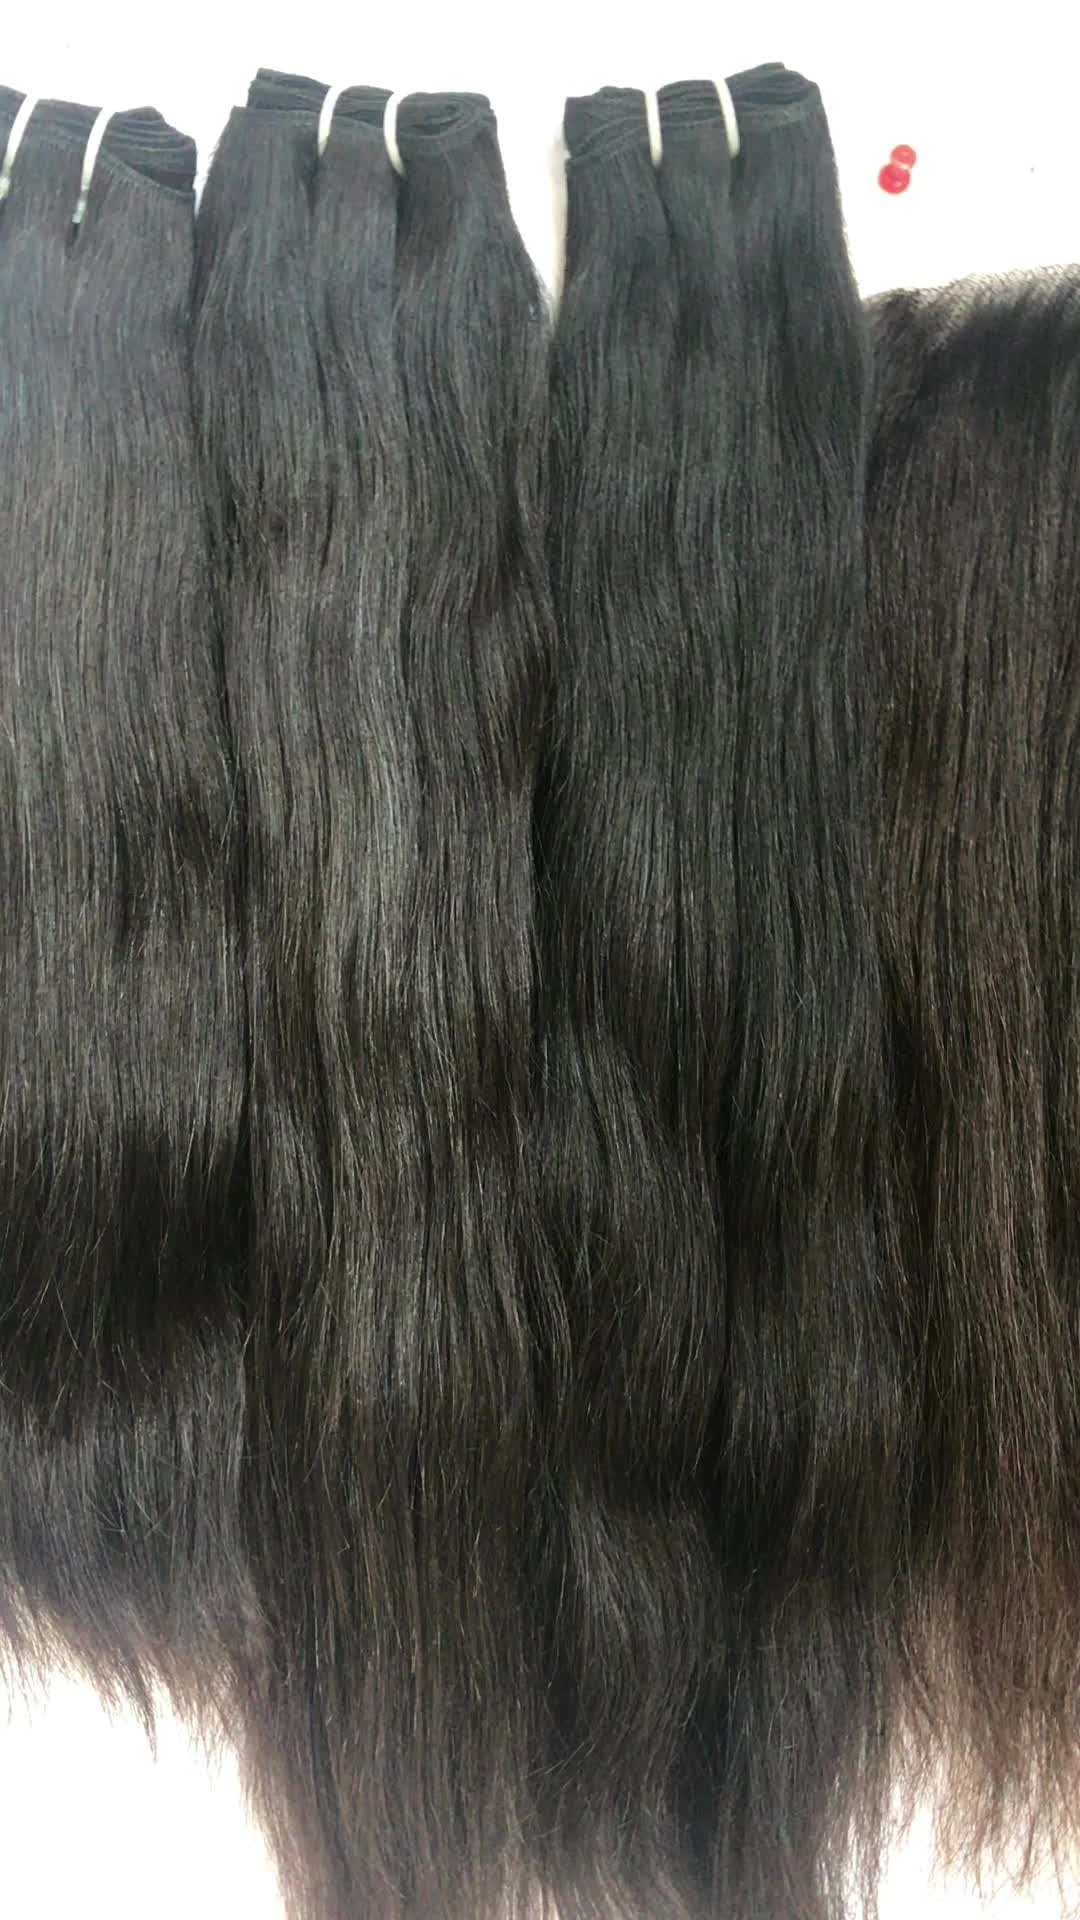 Raw Indian Virgin Hair Directly from India